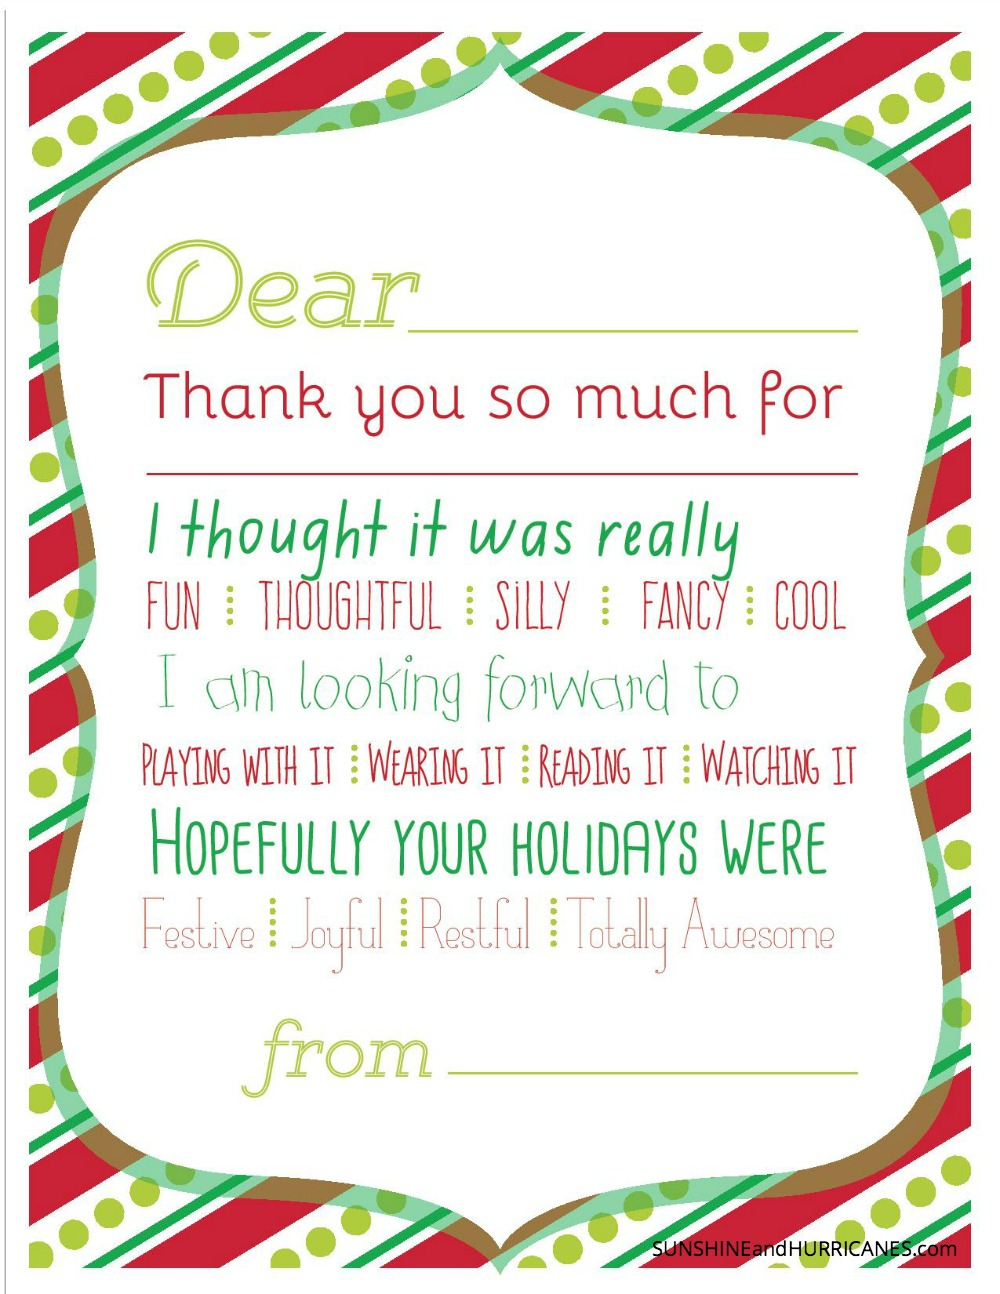 Christmas Printable Thank You Cards For Kids - Fill In The Blank Thank You Cards Printable Free